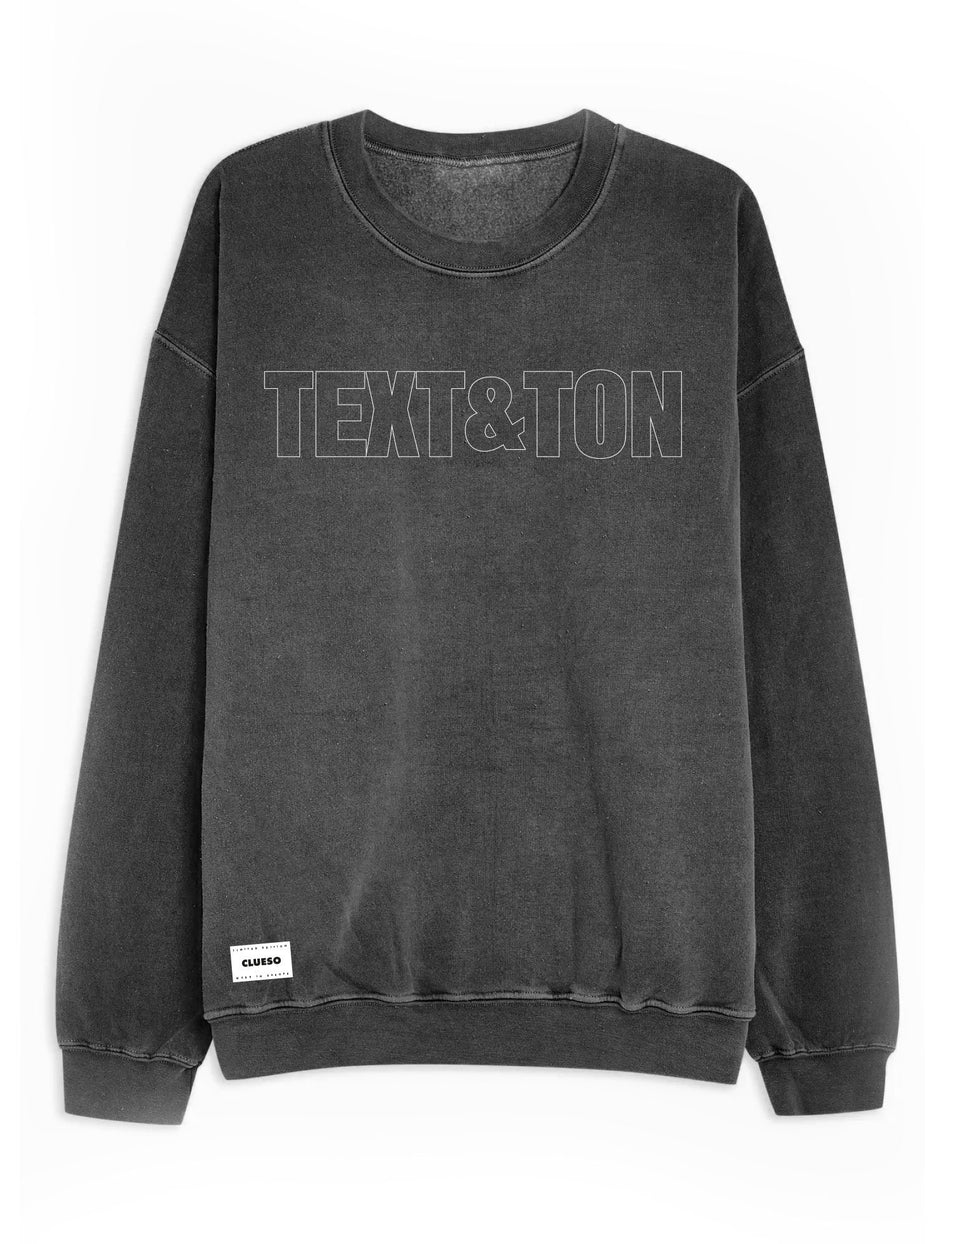 Text und Ton Sweater grau - Clueso Shop